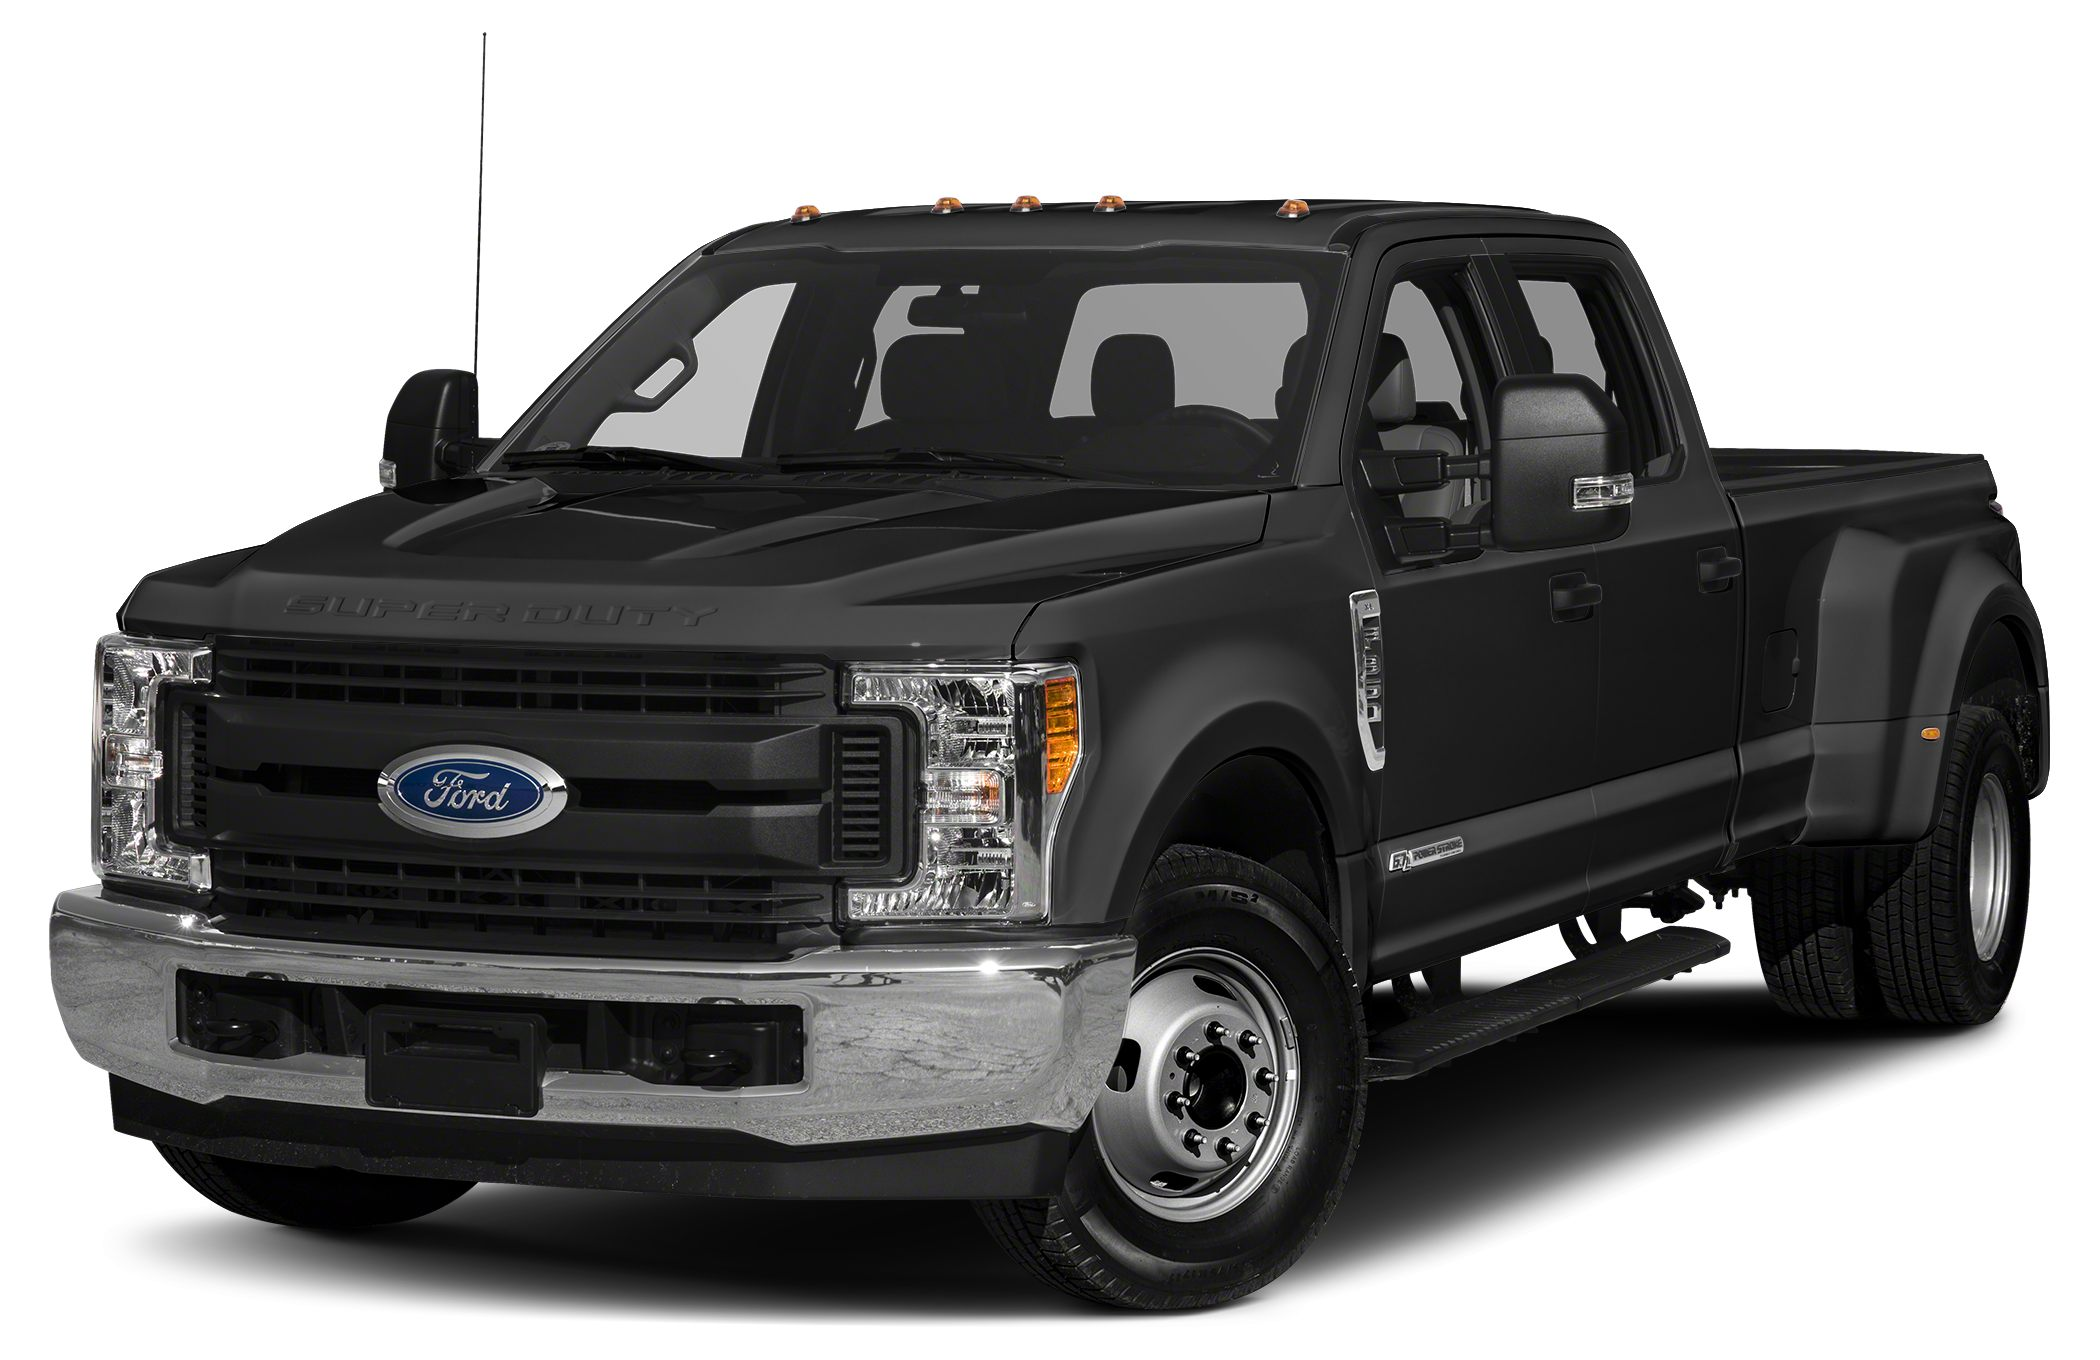 2017 Ford F-350 XL Price includes 750 - F-Super Duty Retail Customer Cash Exp 01022018 15